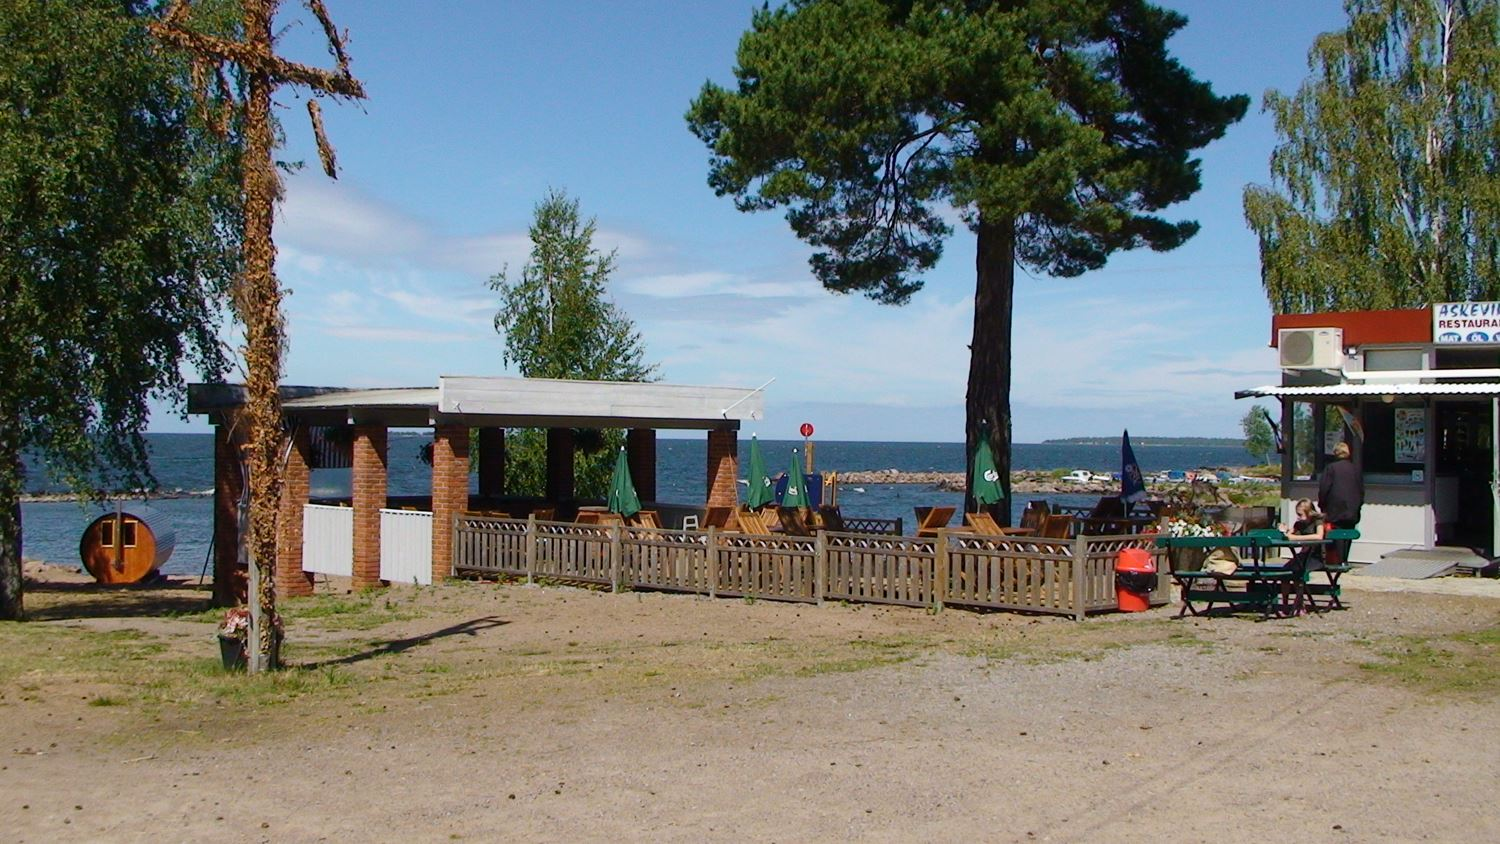 Askeviks Camping & Stugor by Lake Värnern/Camping